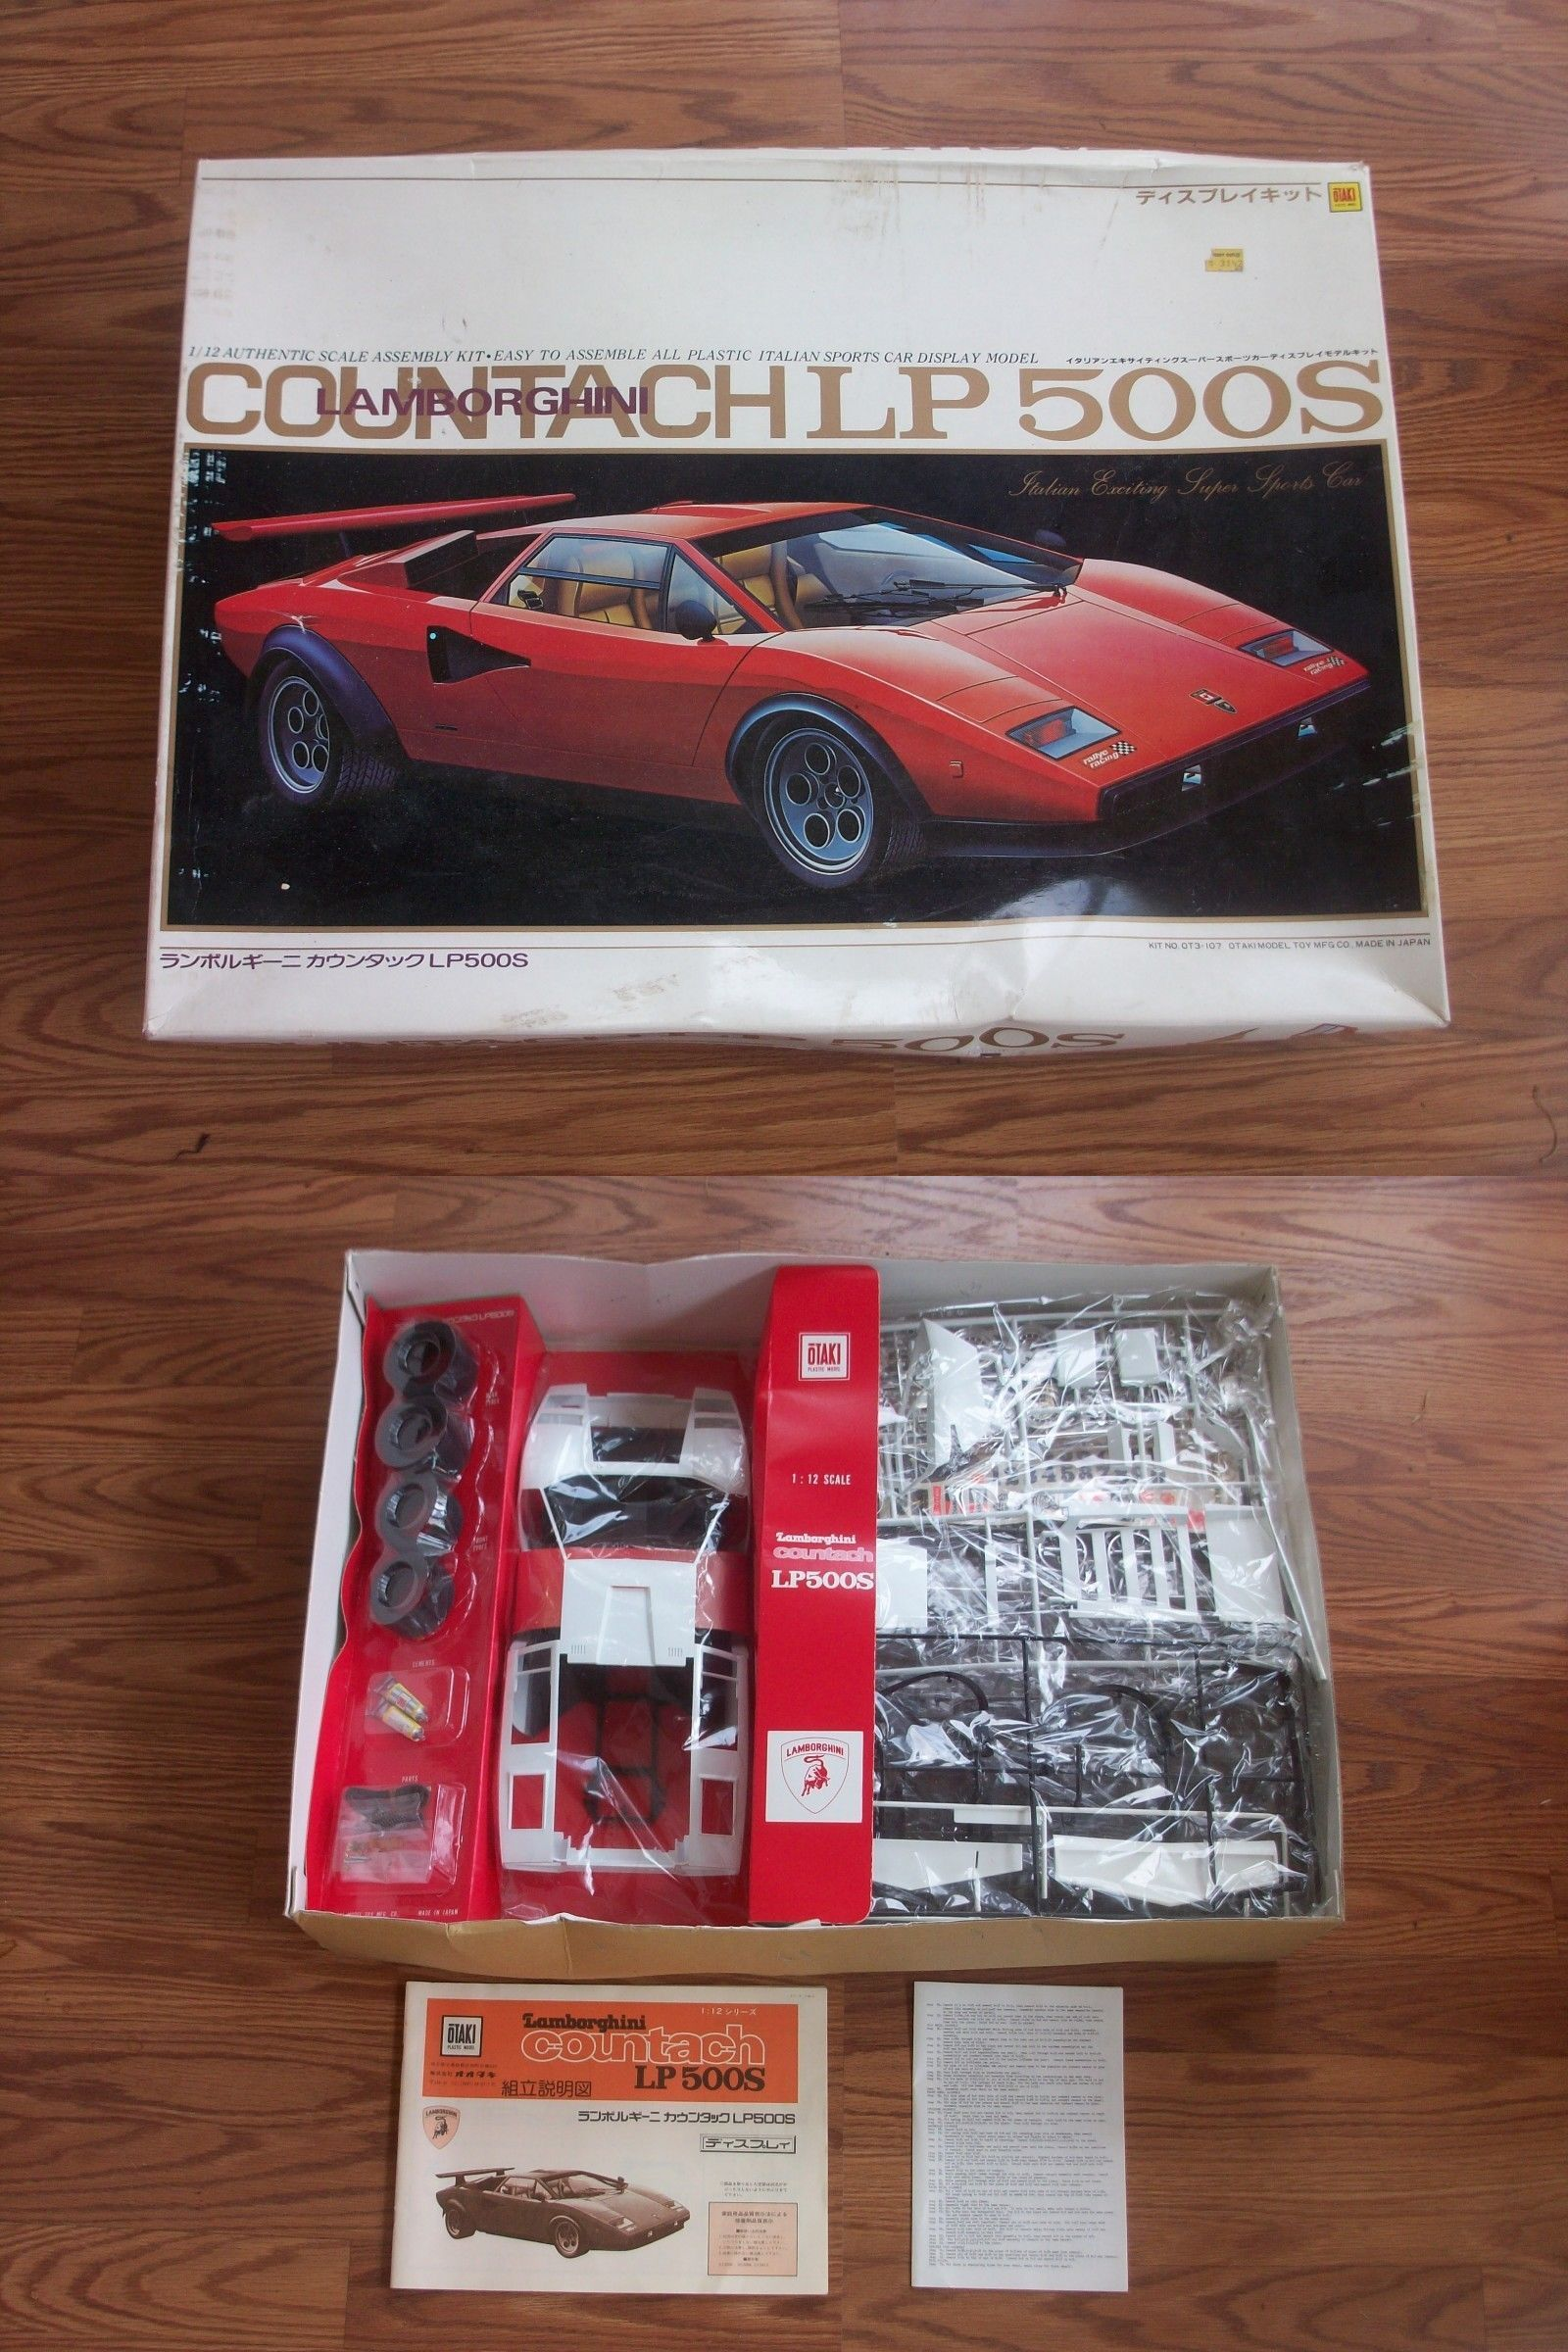 1 12 Scale 145972 Vintage Model Kit Otaki Countach Lp 500s